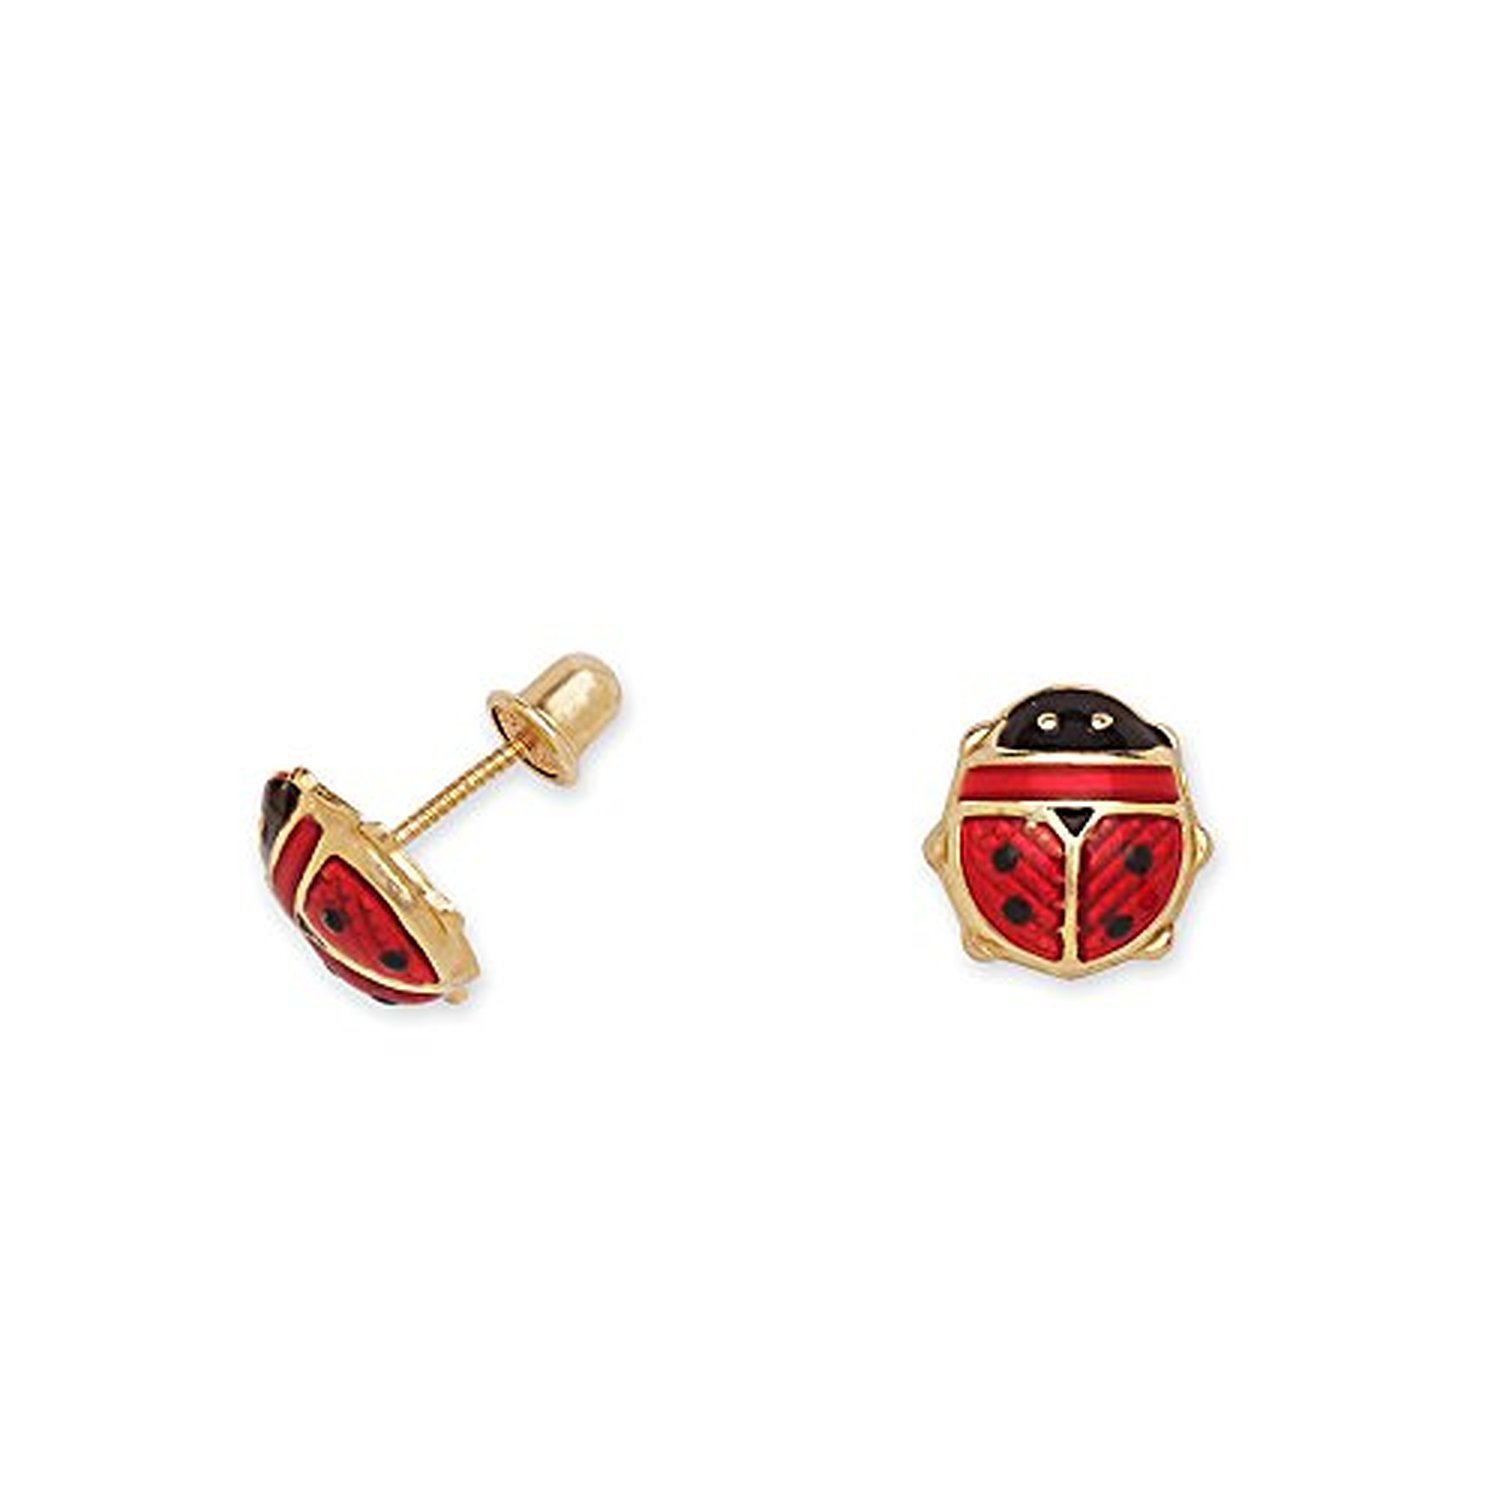 14k Yellow Gold and Pink Enamel Ladybug Baby Earrings in Secure Safety Screw-backs by Manufactured for Art and Molly